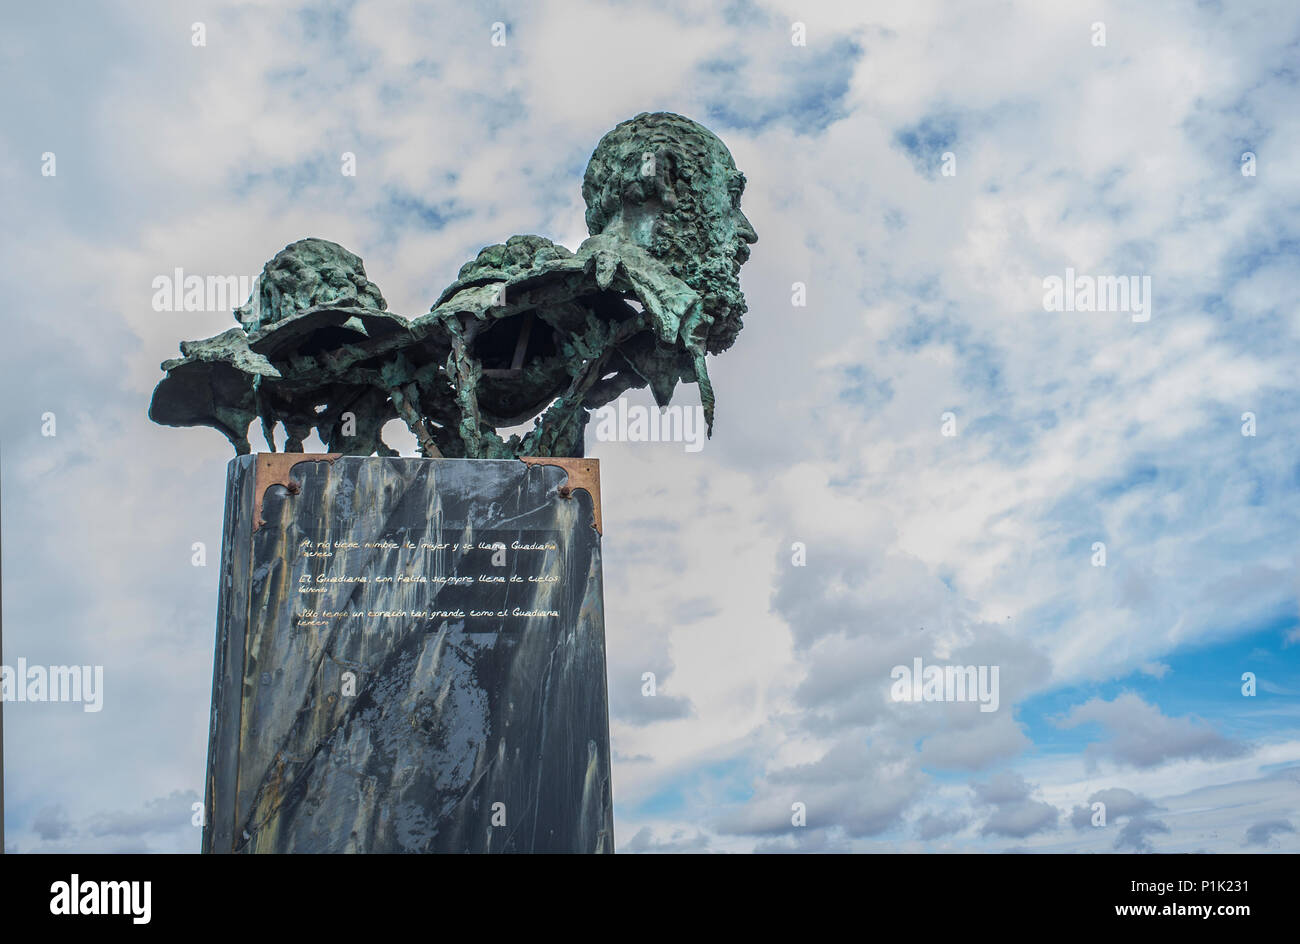 Badajoz, Spain - May 25th, 2018: The three poets sculpture at Autonomy Bridge roundabout.  By sculptor Luis Martinez Giraldo - Stock Image